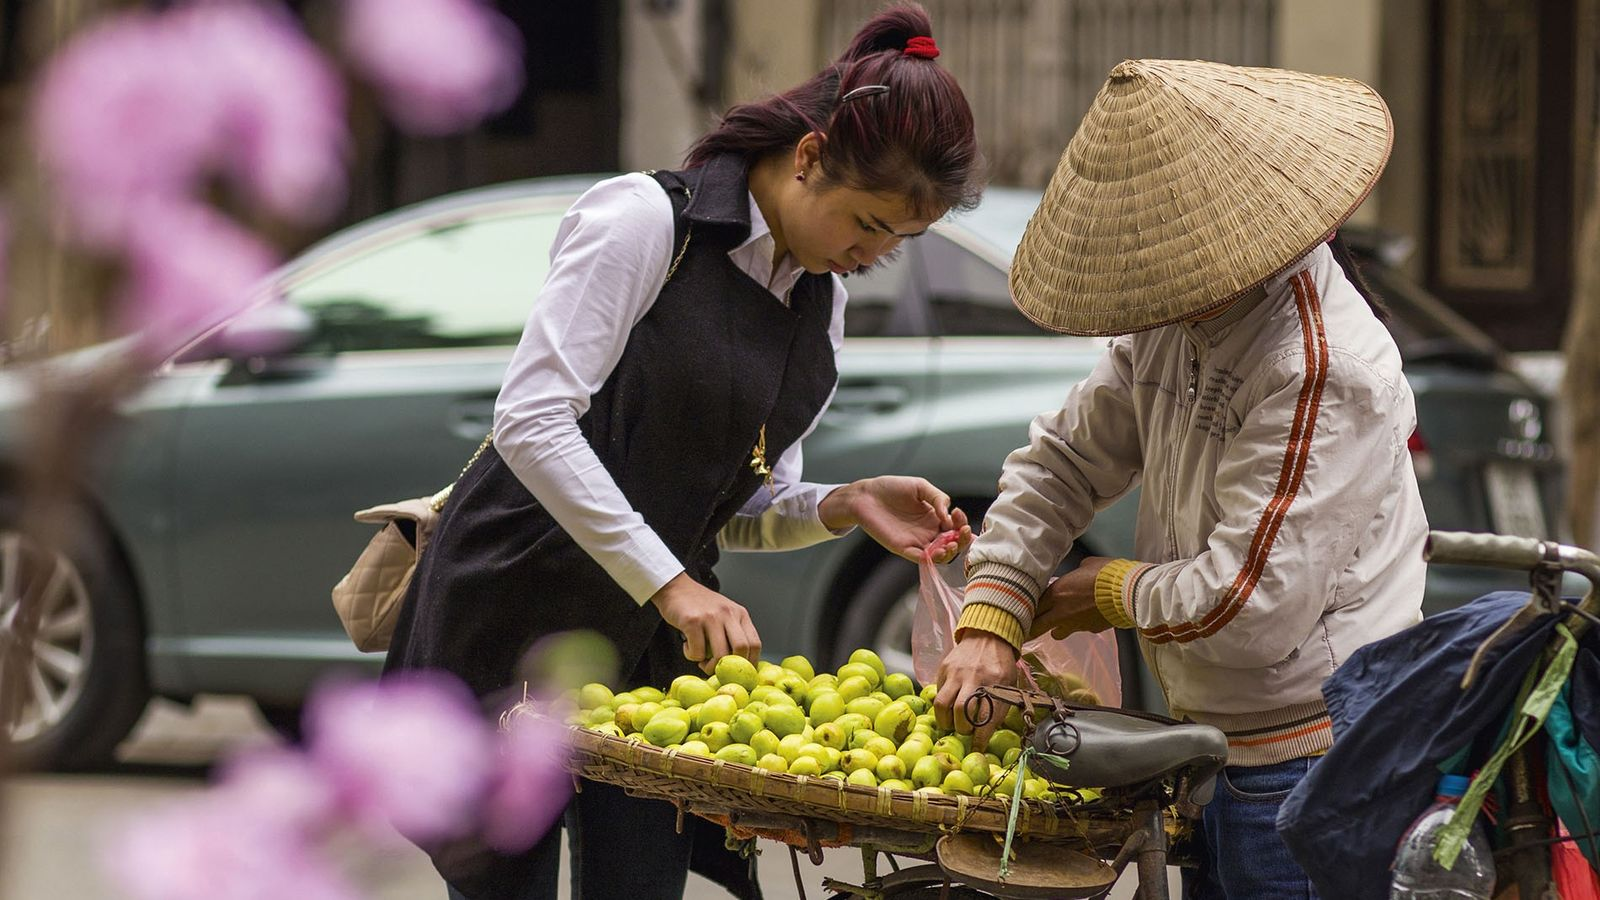 Selling apples on the streets of Hanoi